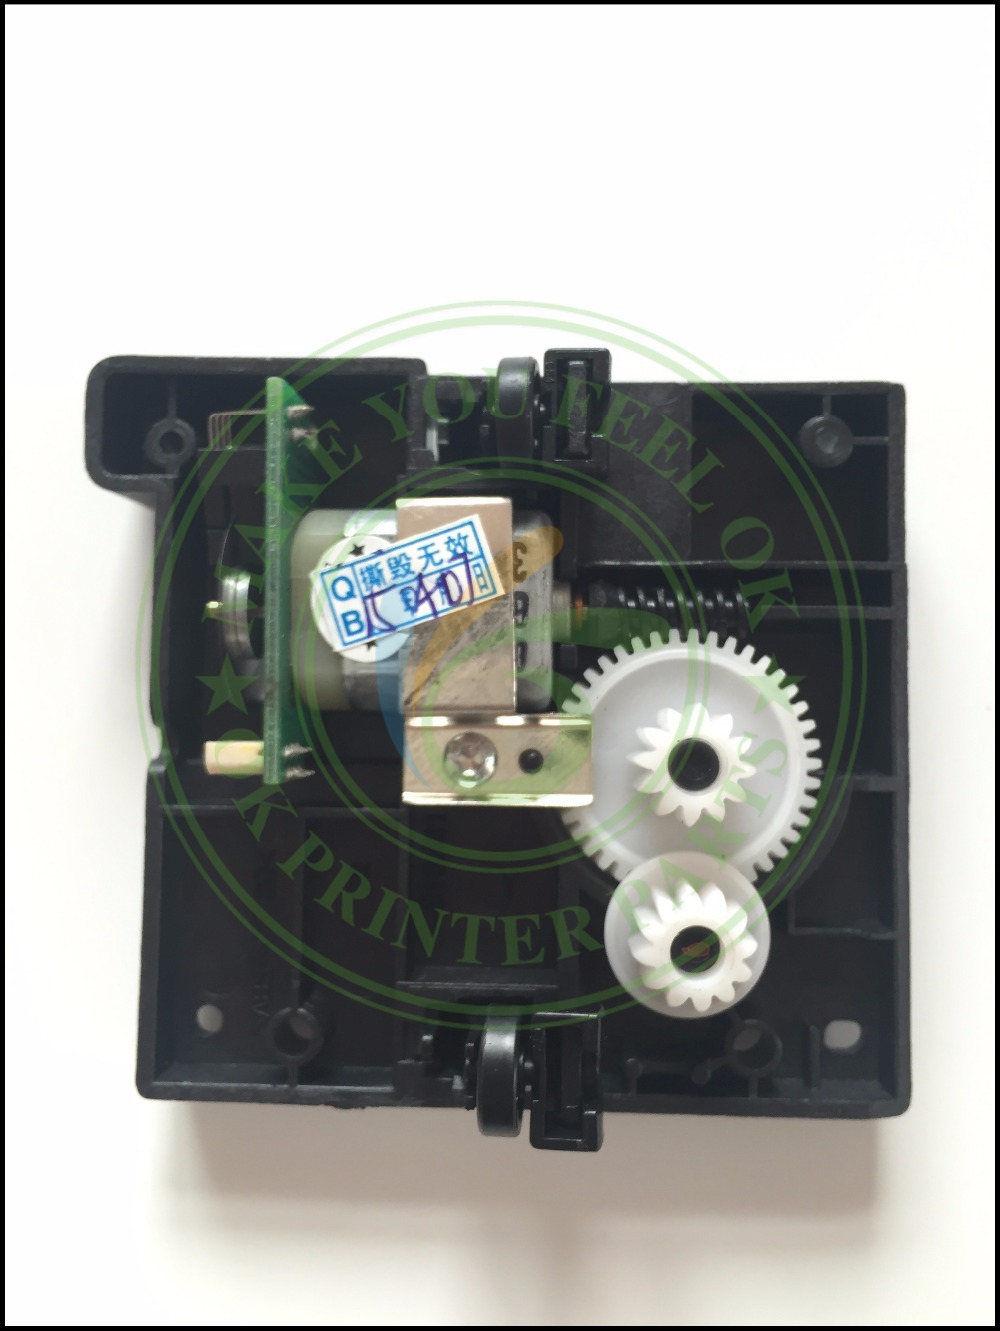 CB376-67901 Scanner Head Bracket assembly Scanner Unit scanner motor gear assy for HP M1005 M1120 CM1015 CM1017 CM1312 5788